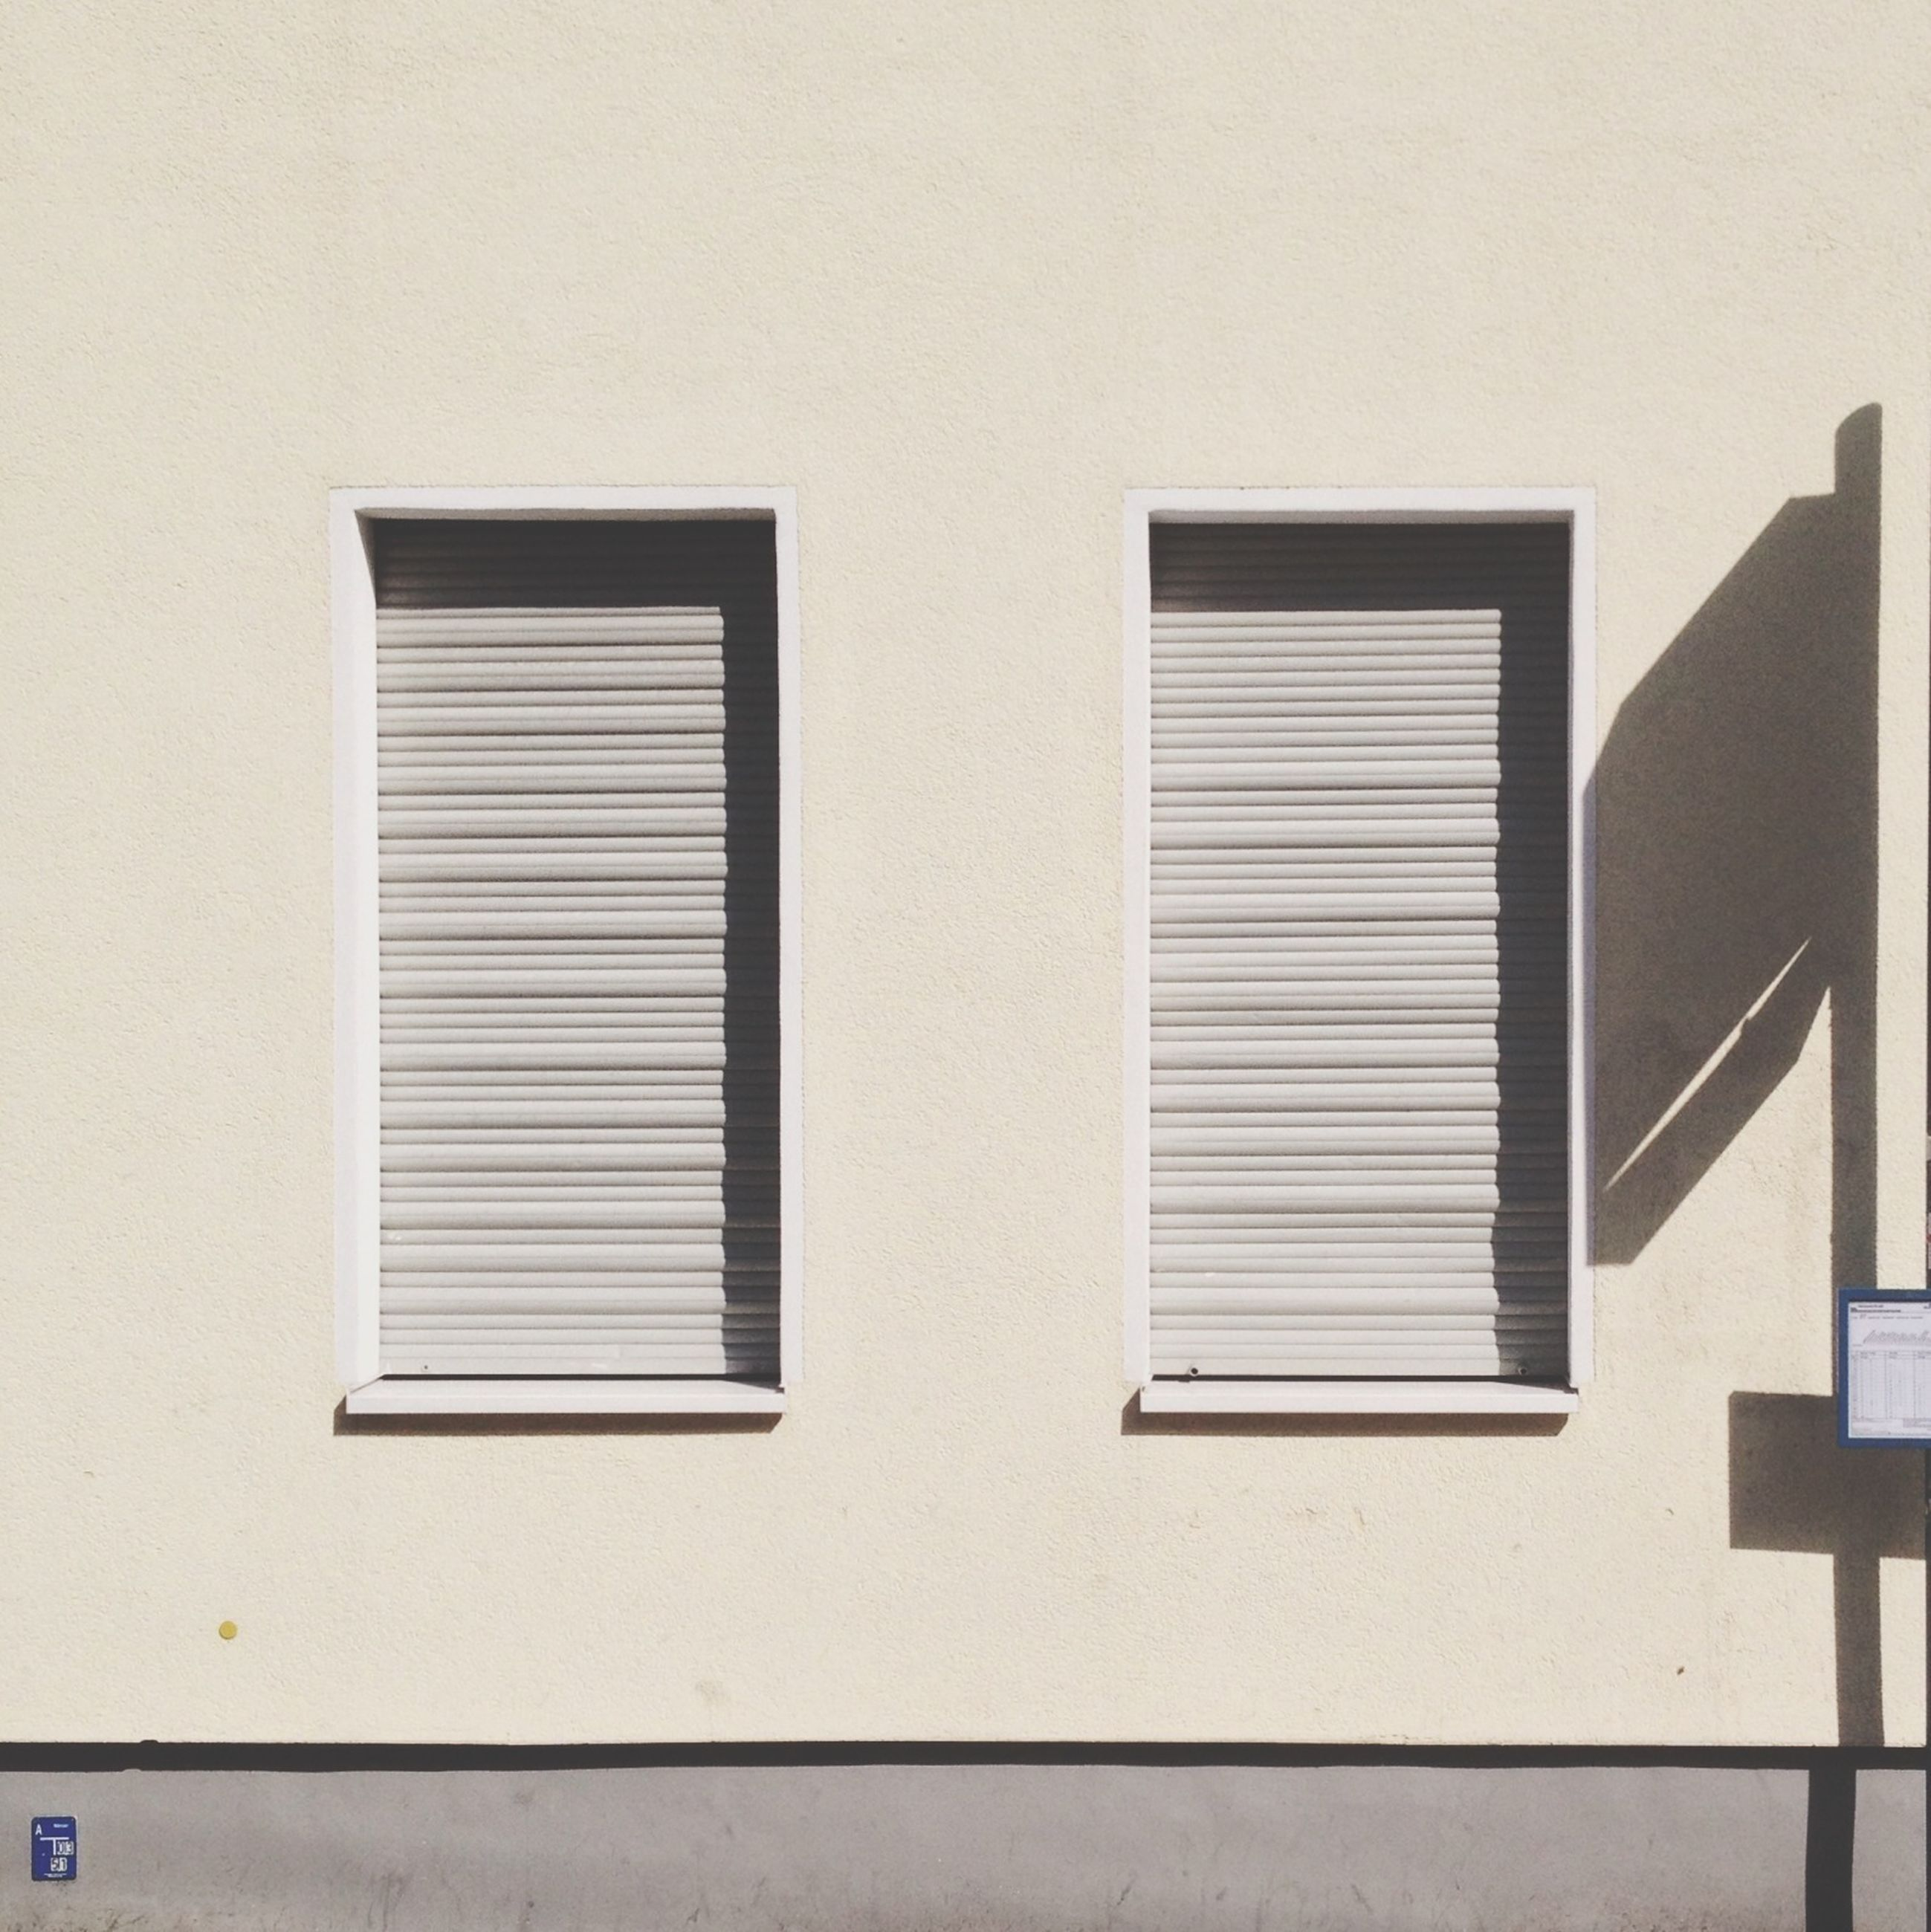 architecture, built structure, building exterior, window, wall - building feature, residential building, building, residential structure, wall, copy space, house, low angle view, day, no people, closed, outdoors, clear sky, pattern, geometric shape, shutter